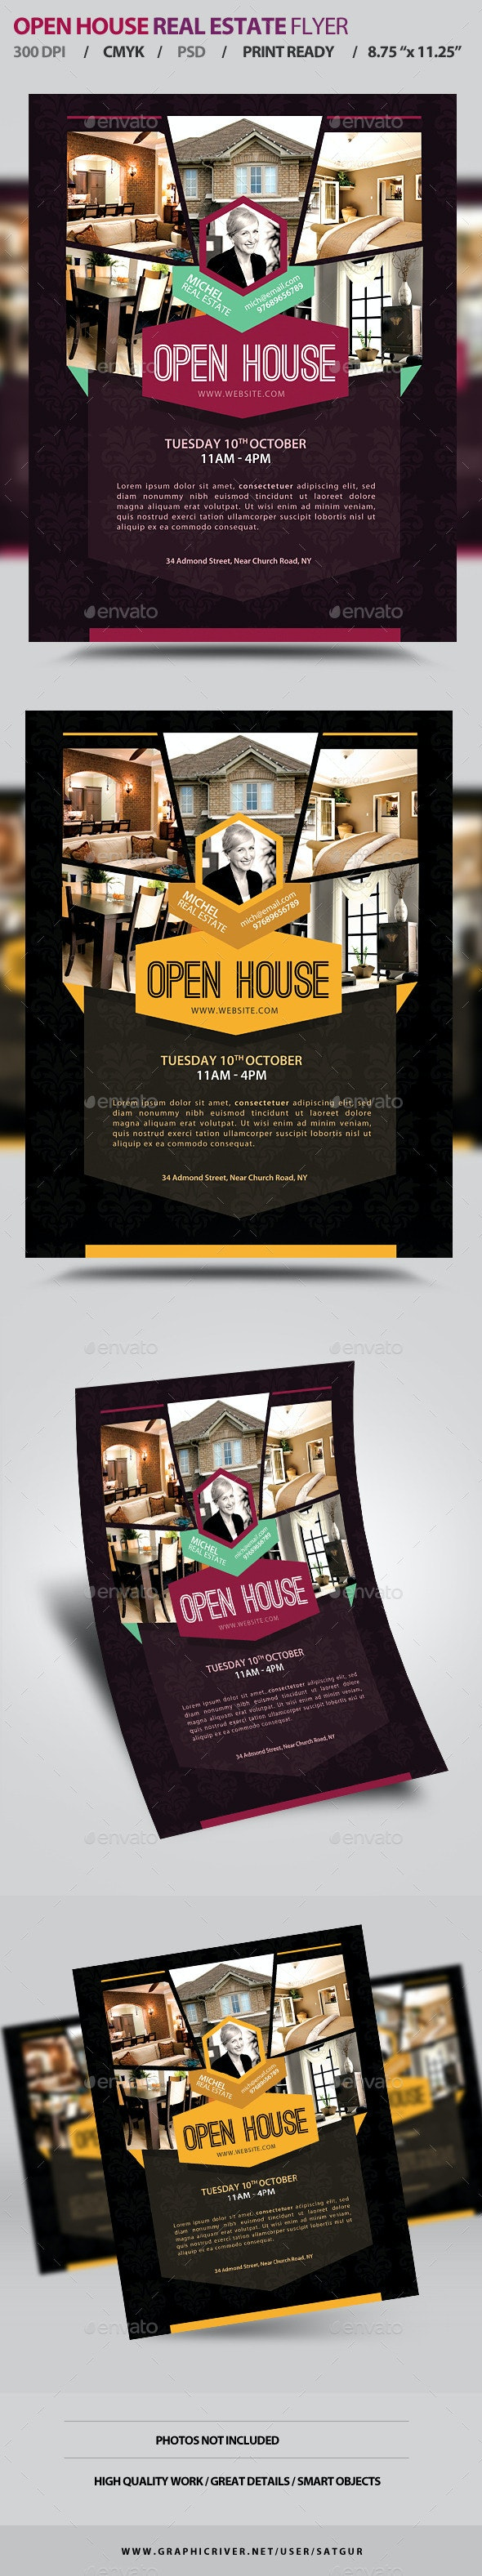 Open House Real Estate Promotion Flyer V1 - Corporate Flyers